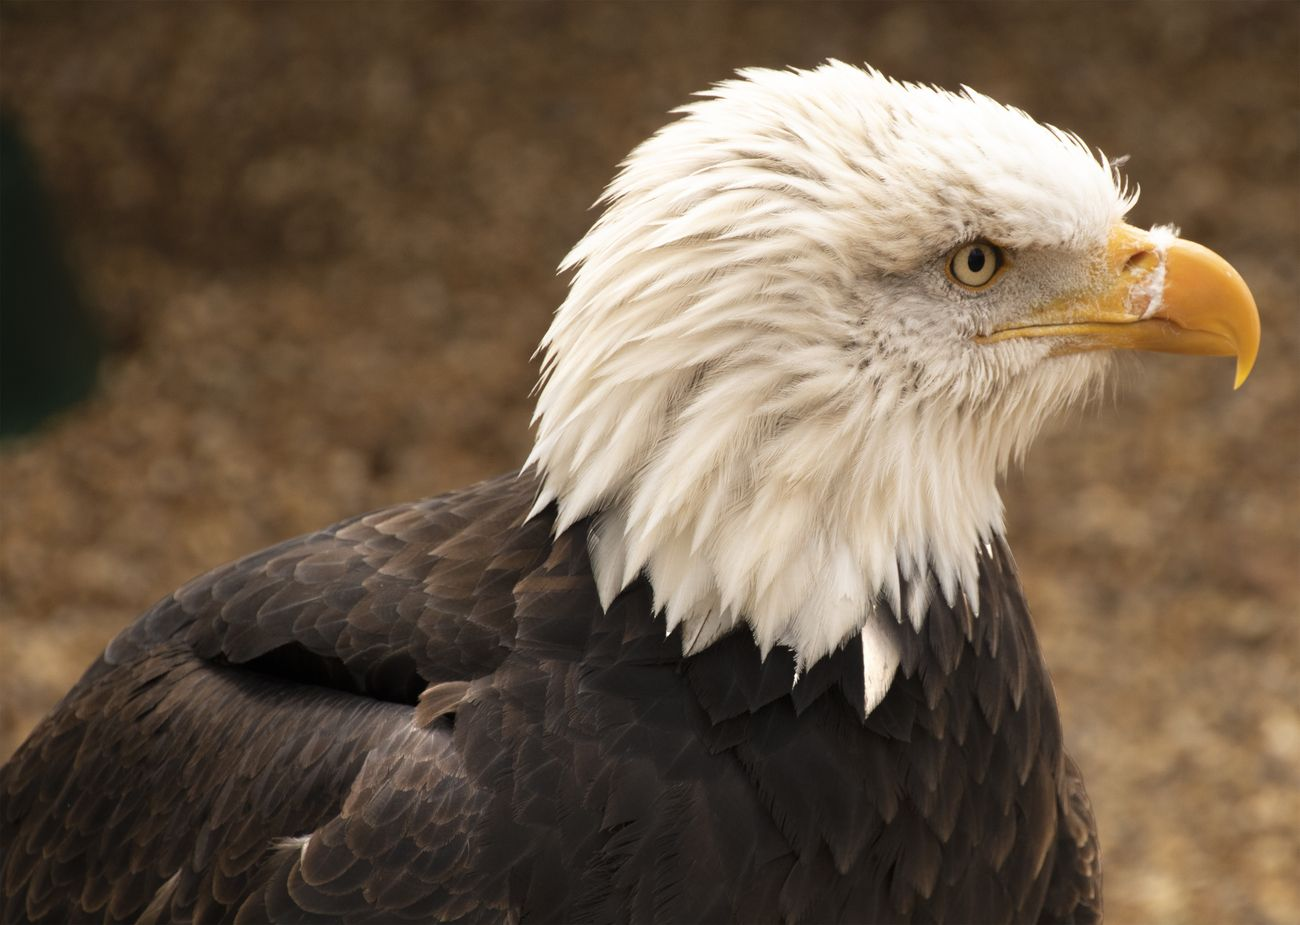 Bald eagles are not a native of the UK. I met this one at Andover Hawk Conservancy in the south of England.